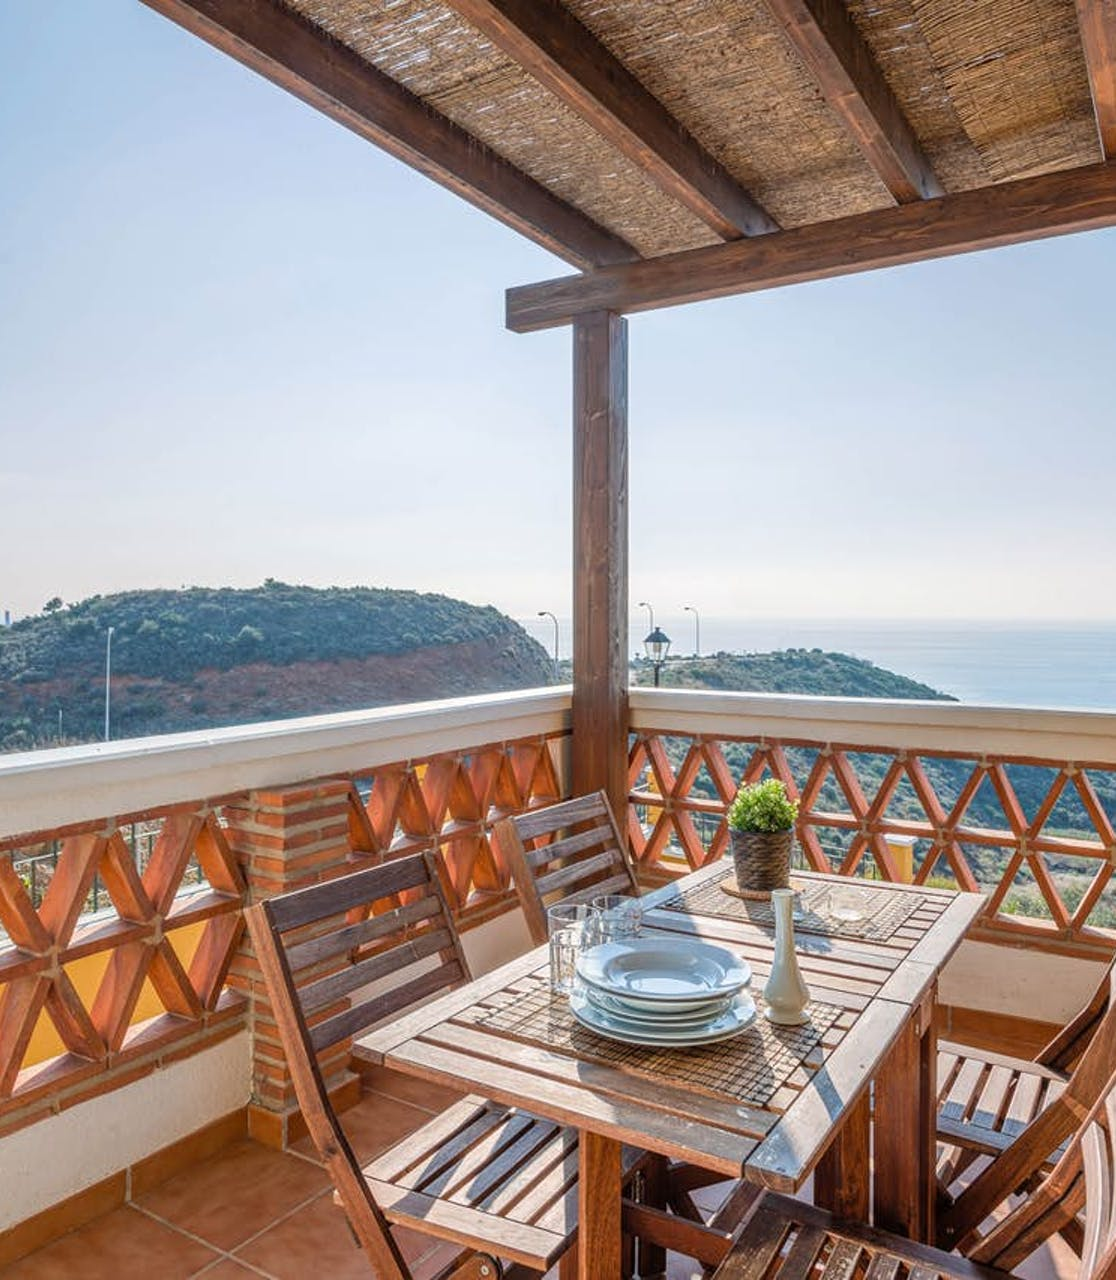 Andalusia vacation rental with amazing view from patio